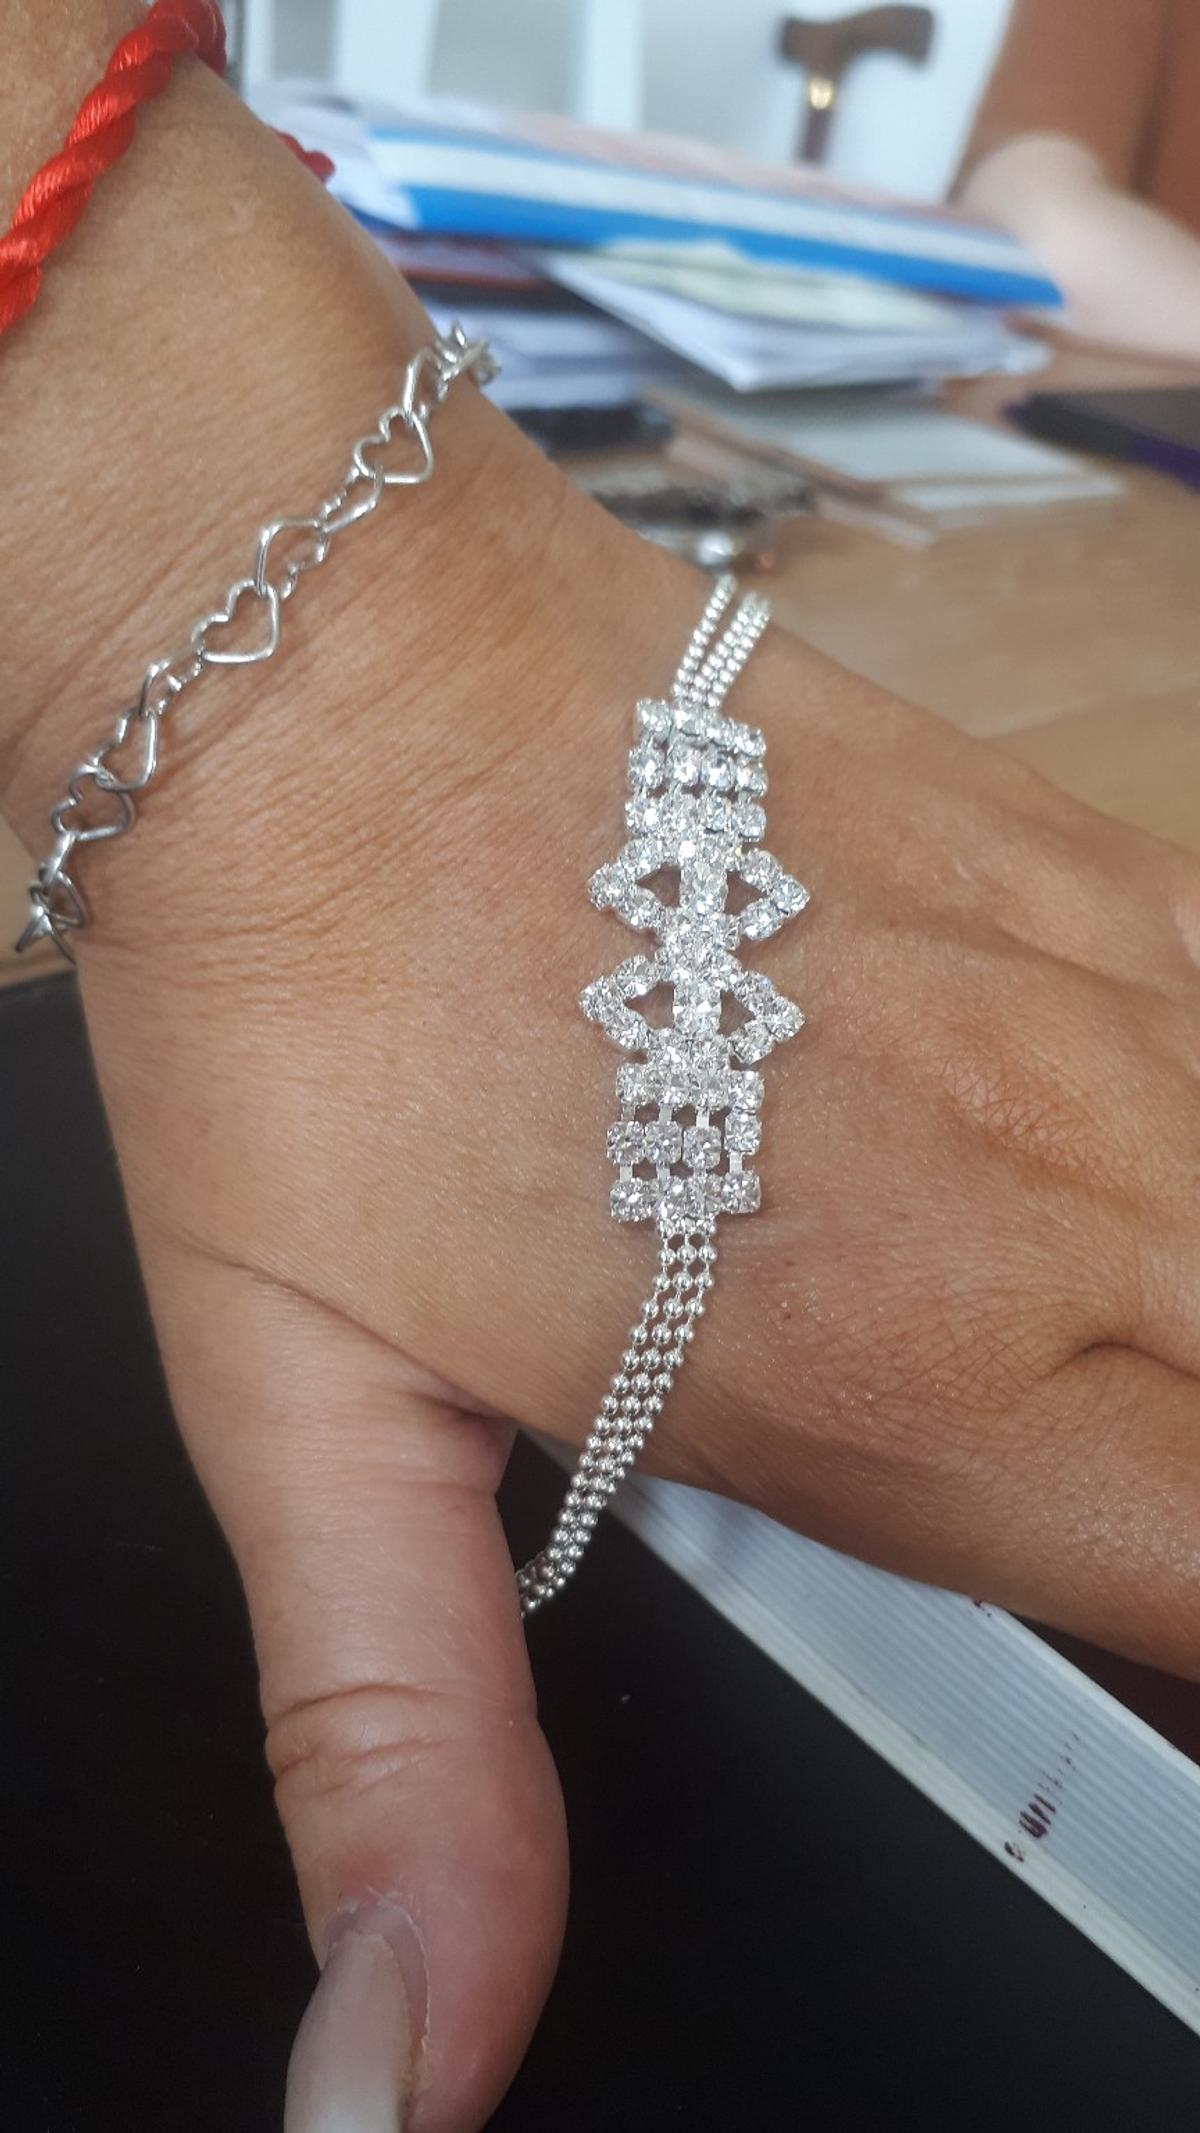 Brand new in box ladies sparkling crystal bracelet with secure clasp